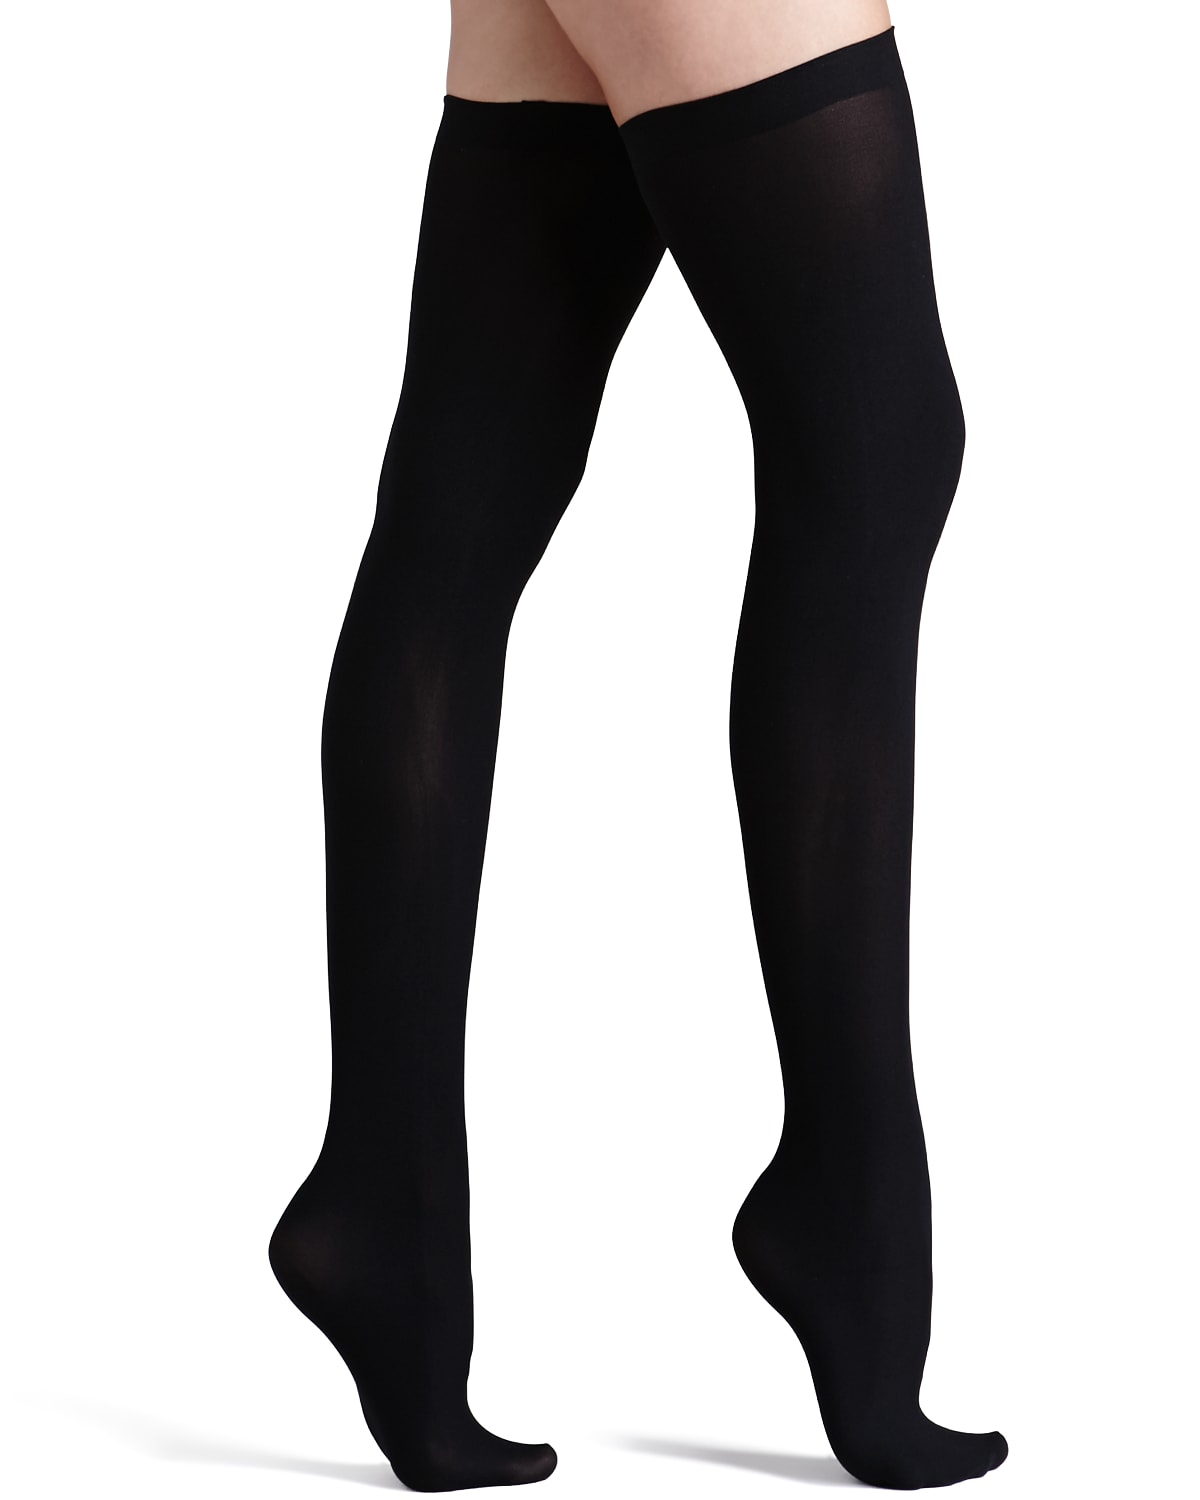 Up All Night Opaque Thigh Highs